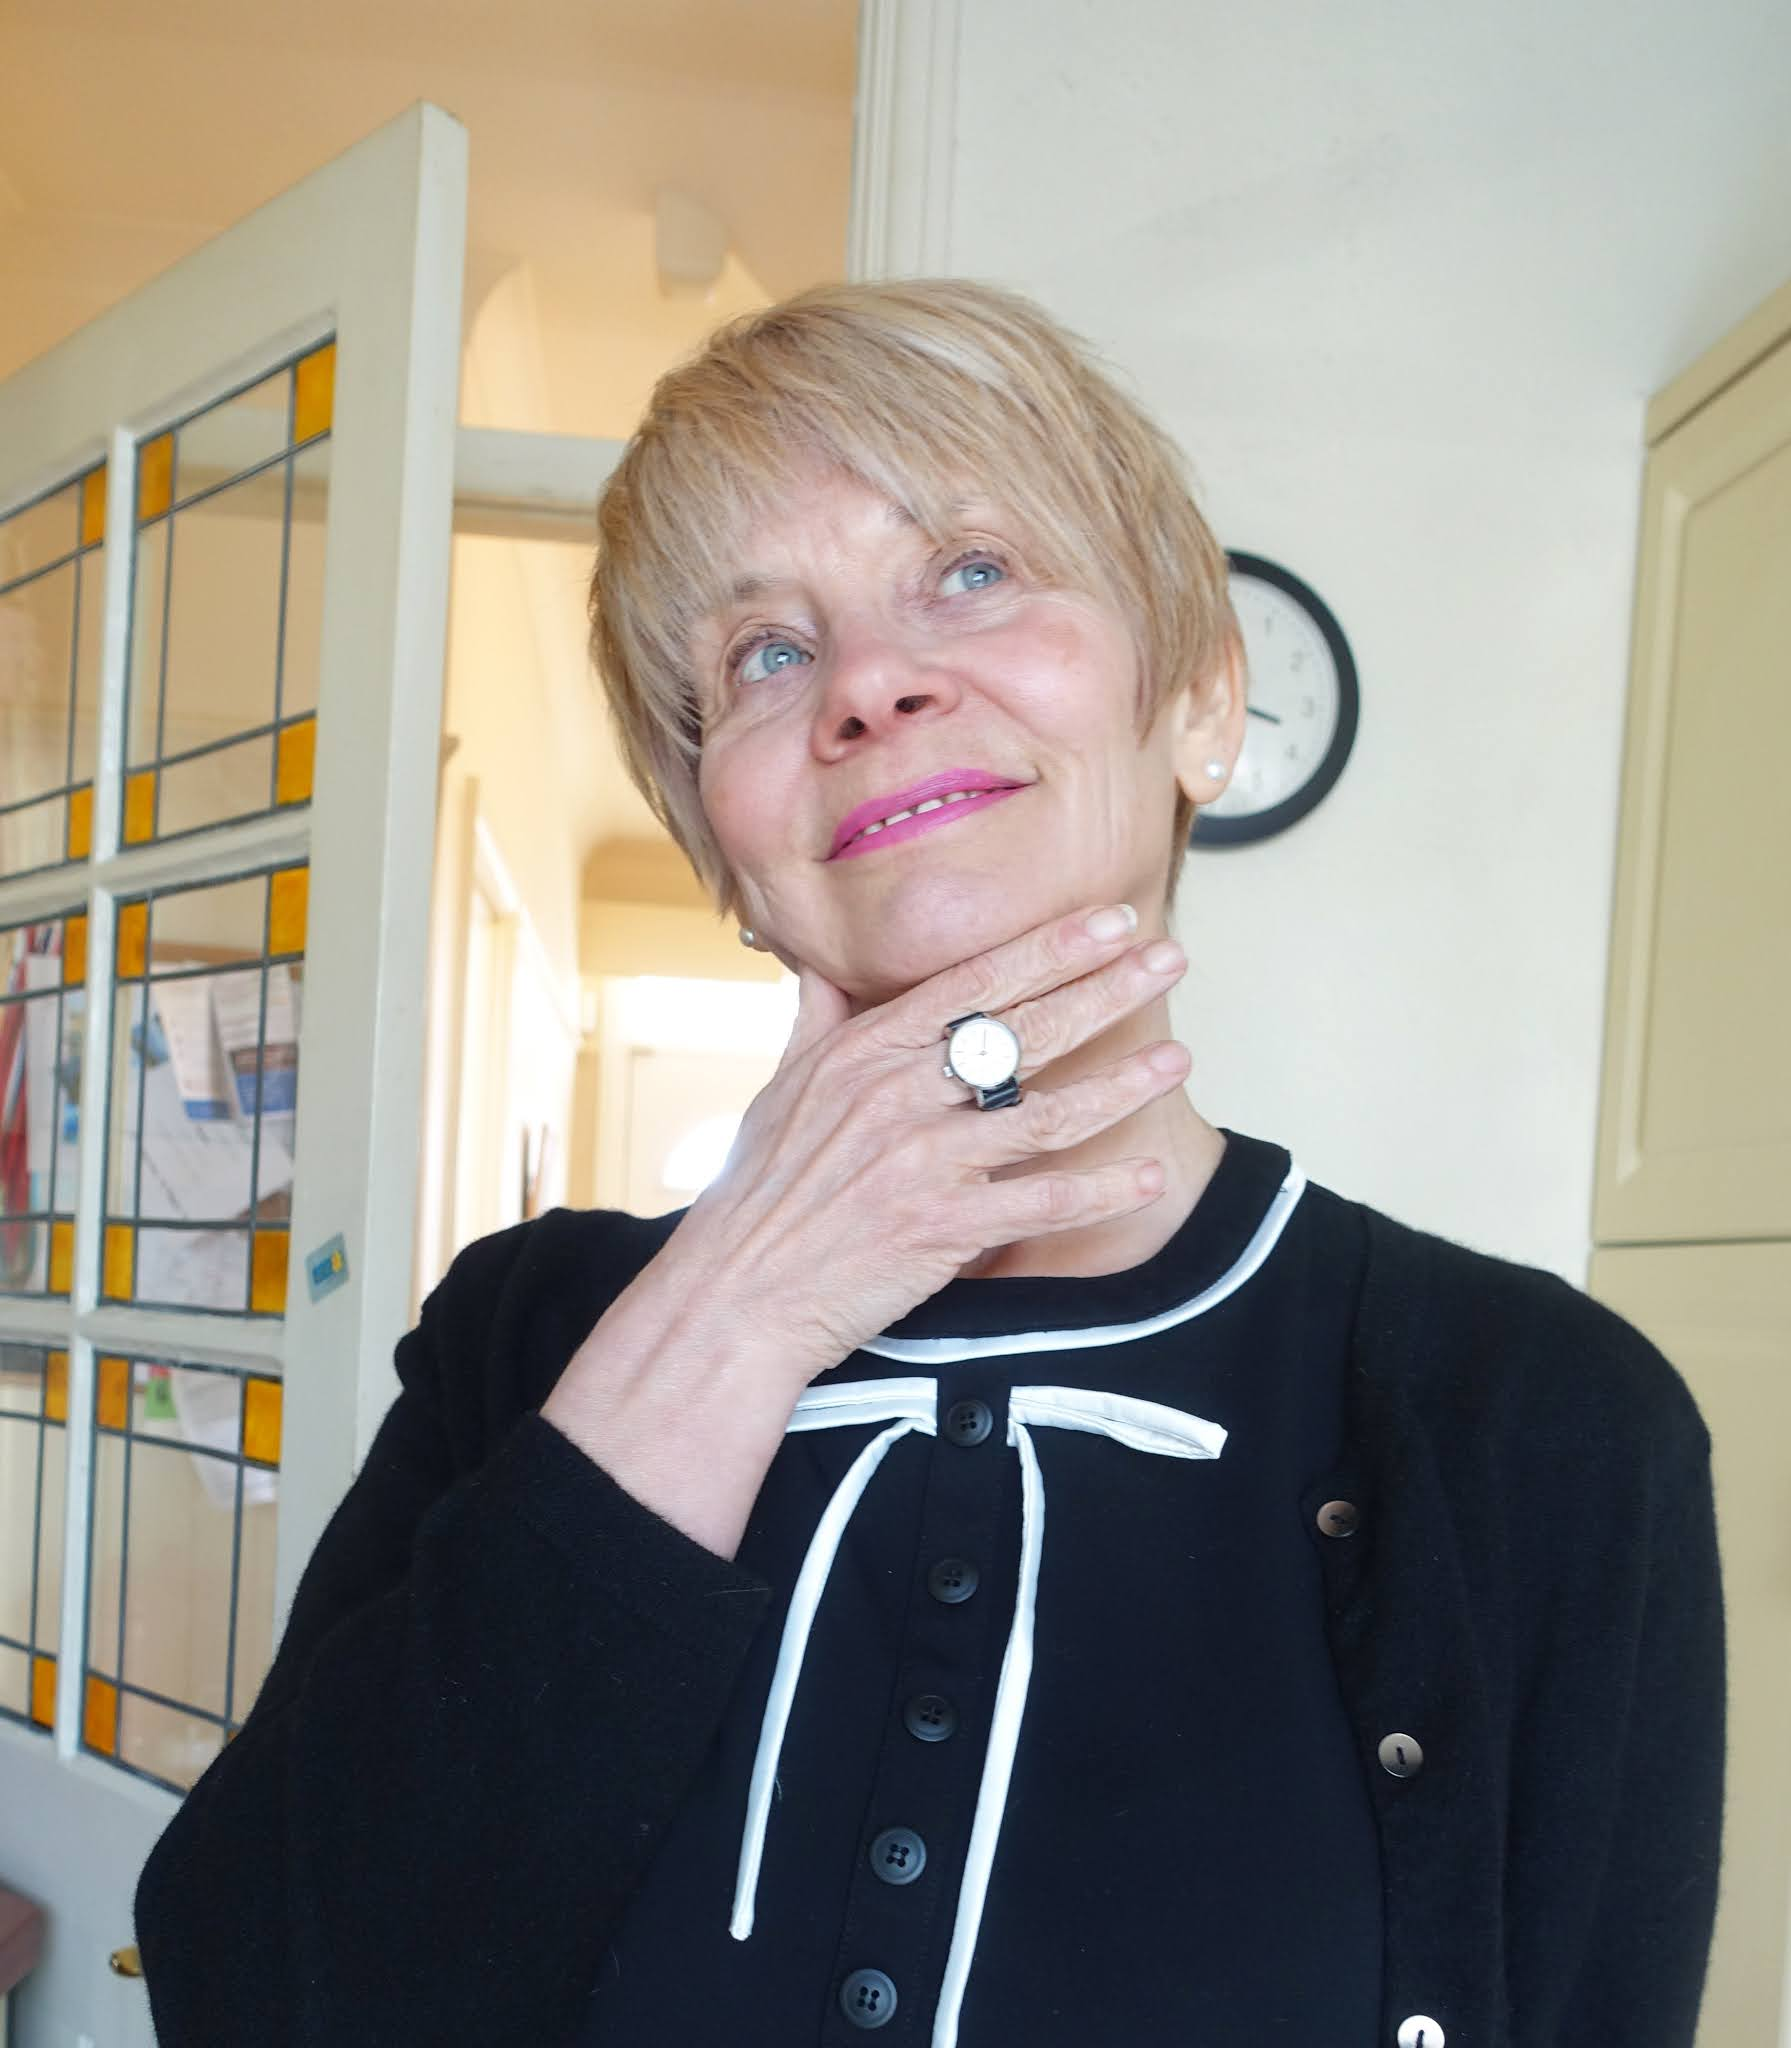 Over 50s blogger Gail Hanlon gets an up-to-date hair makeover following lockdown